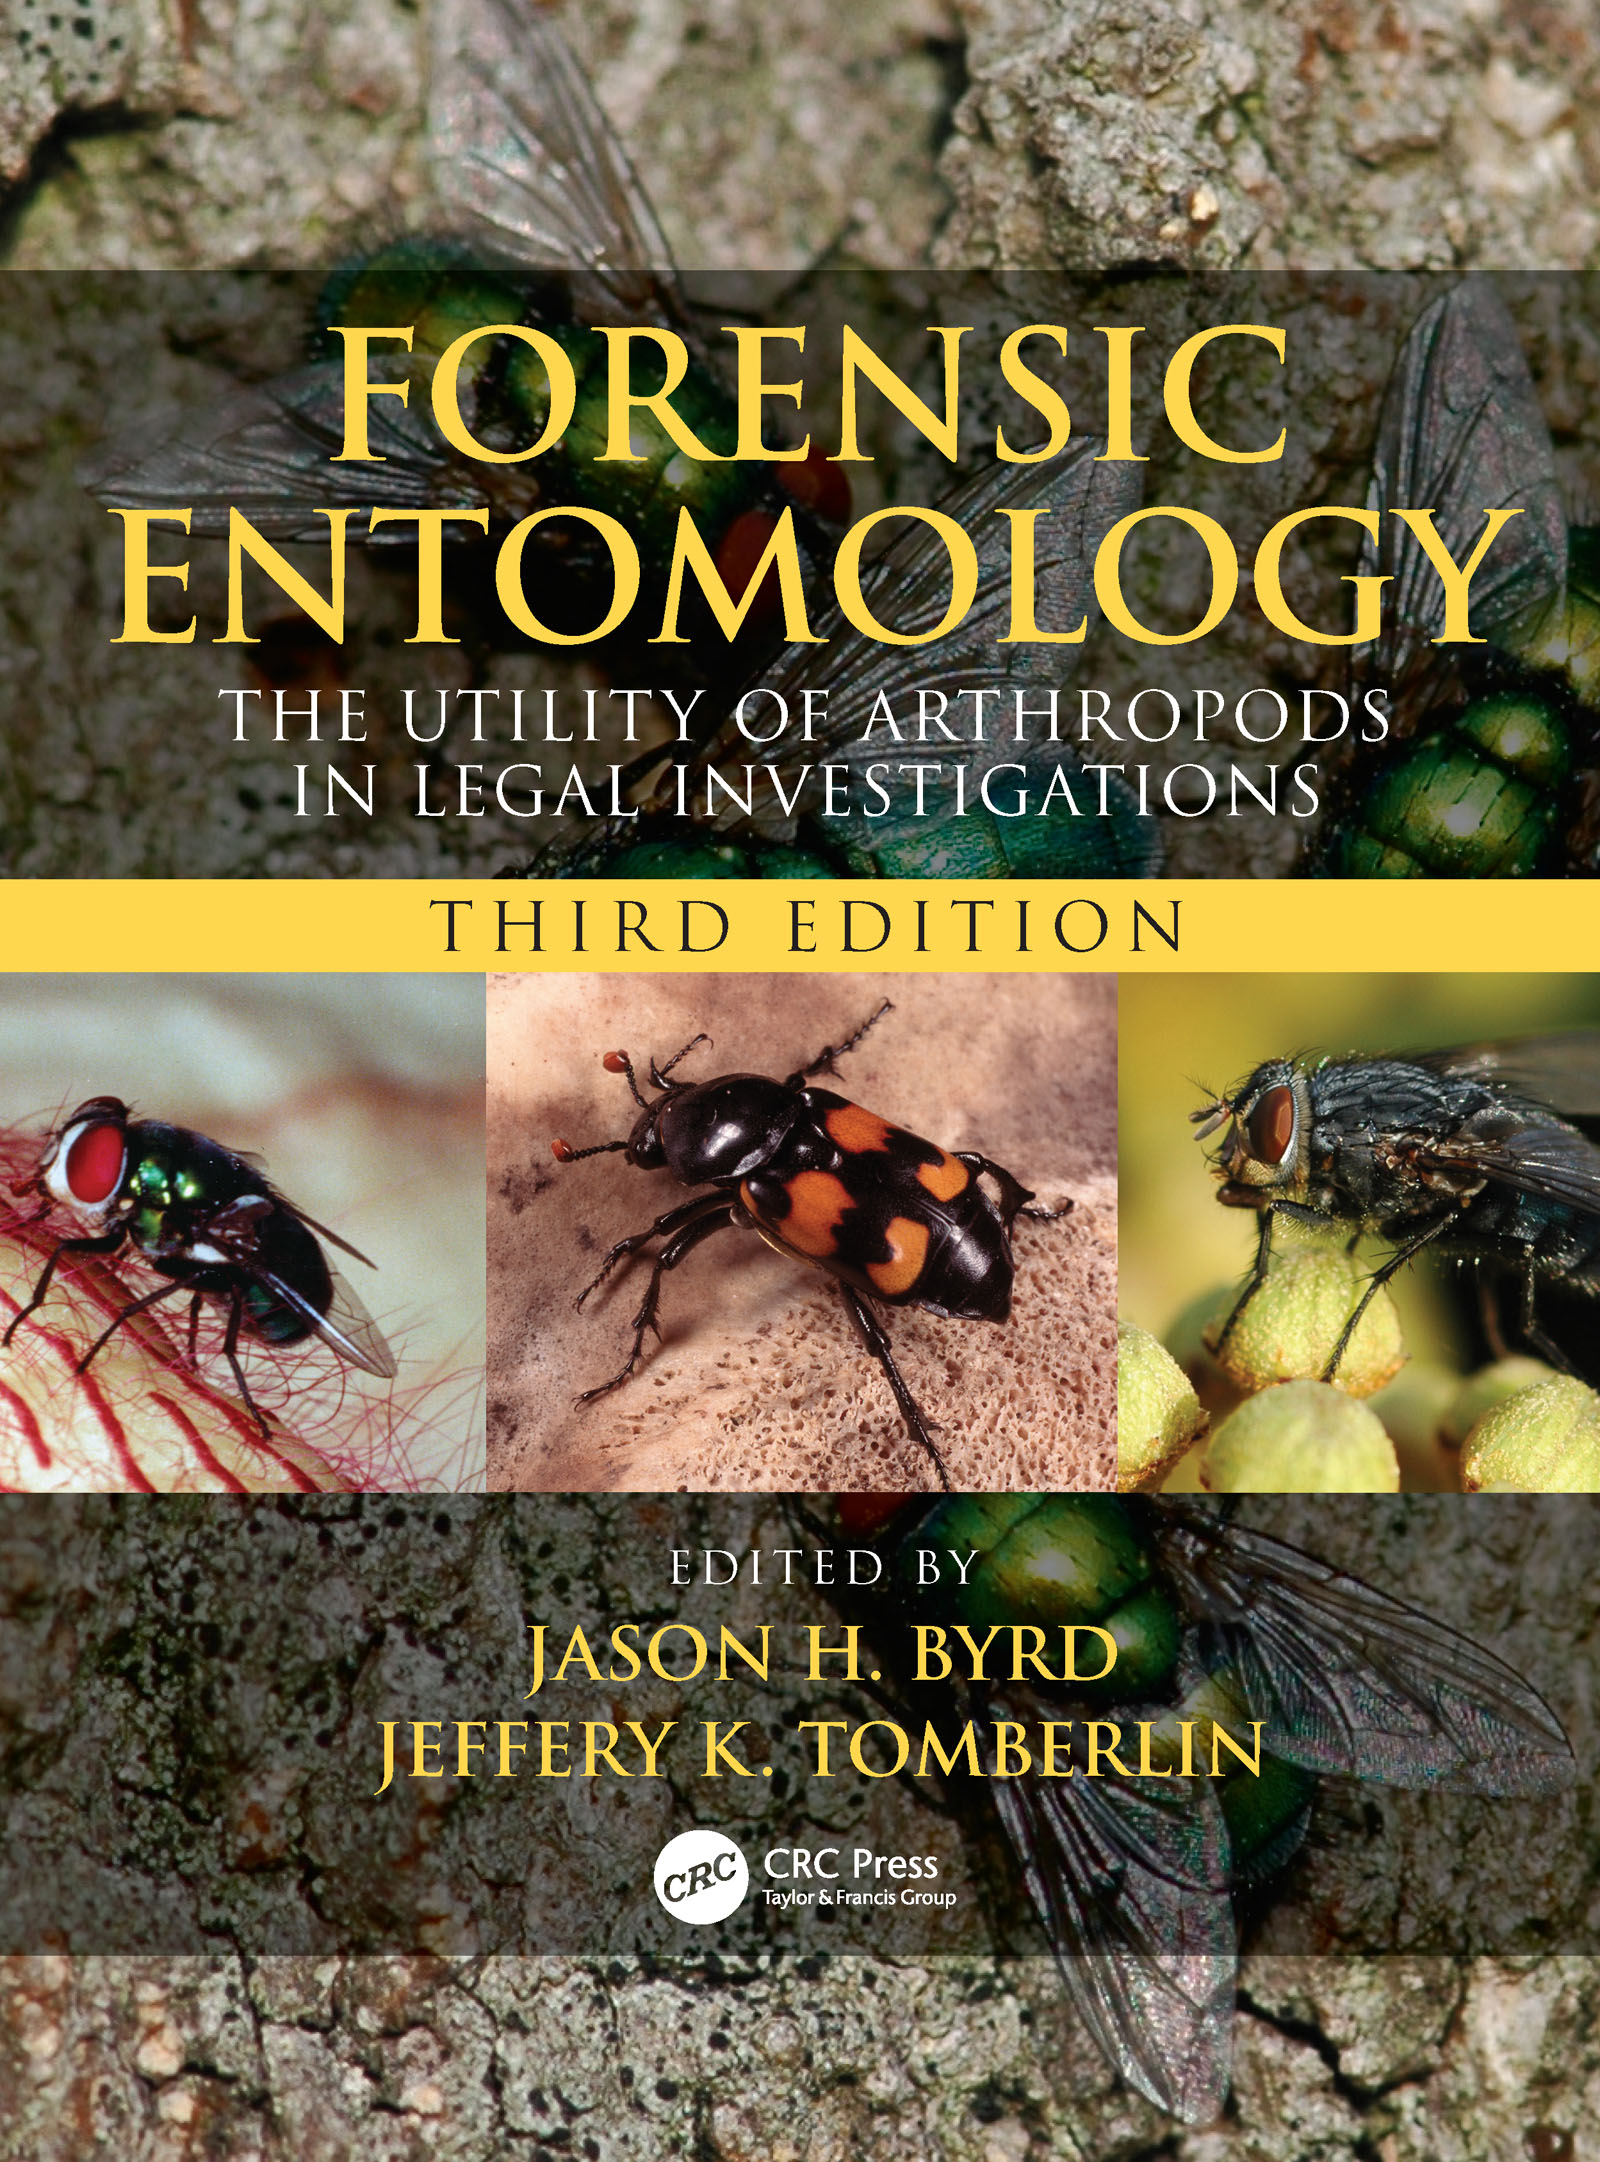 Forensic Entomology: The Utility of Arthropods in Legal Investigations, Third Edition book cover